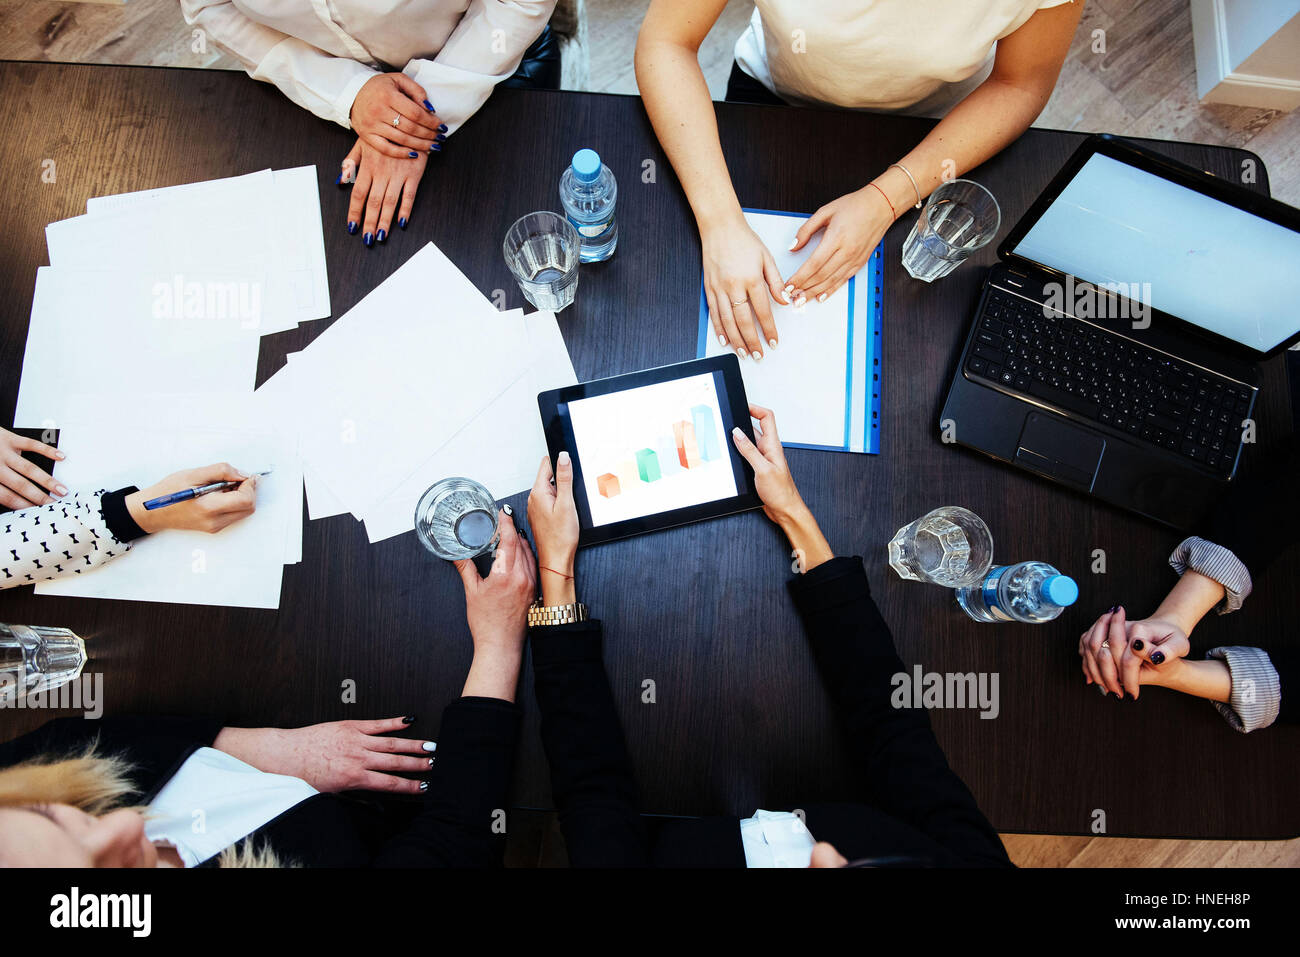 Using the computer digital students during the task - Stock Image